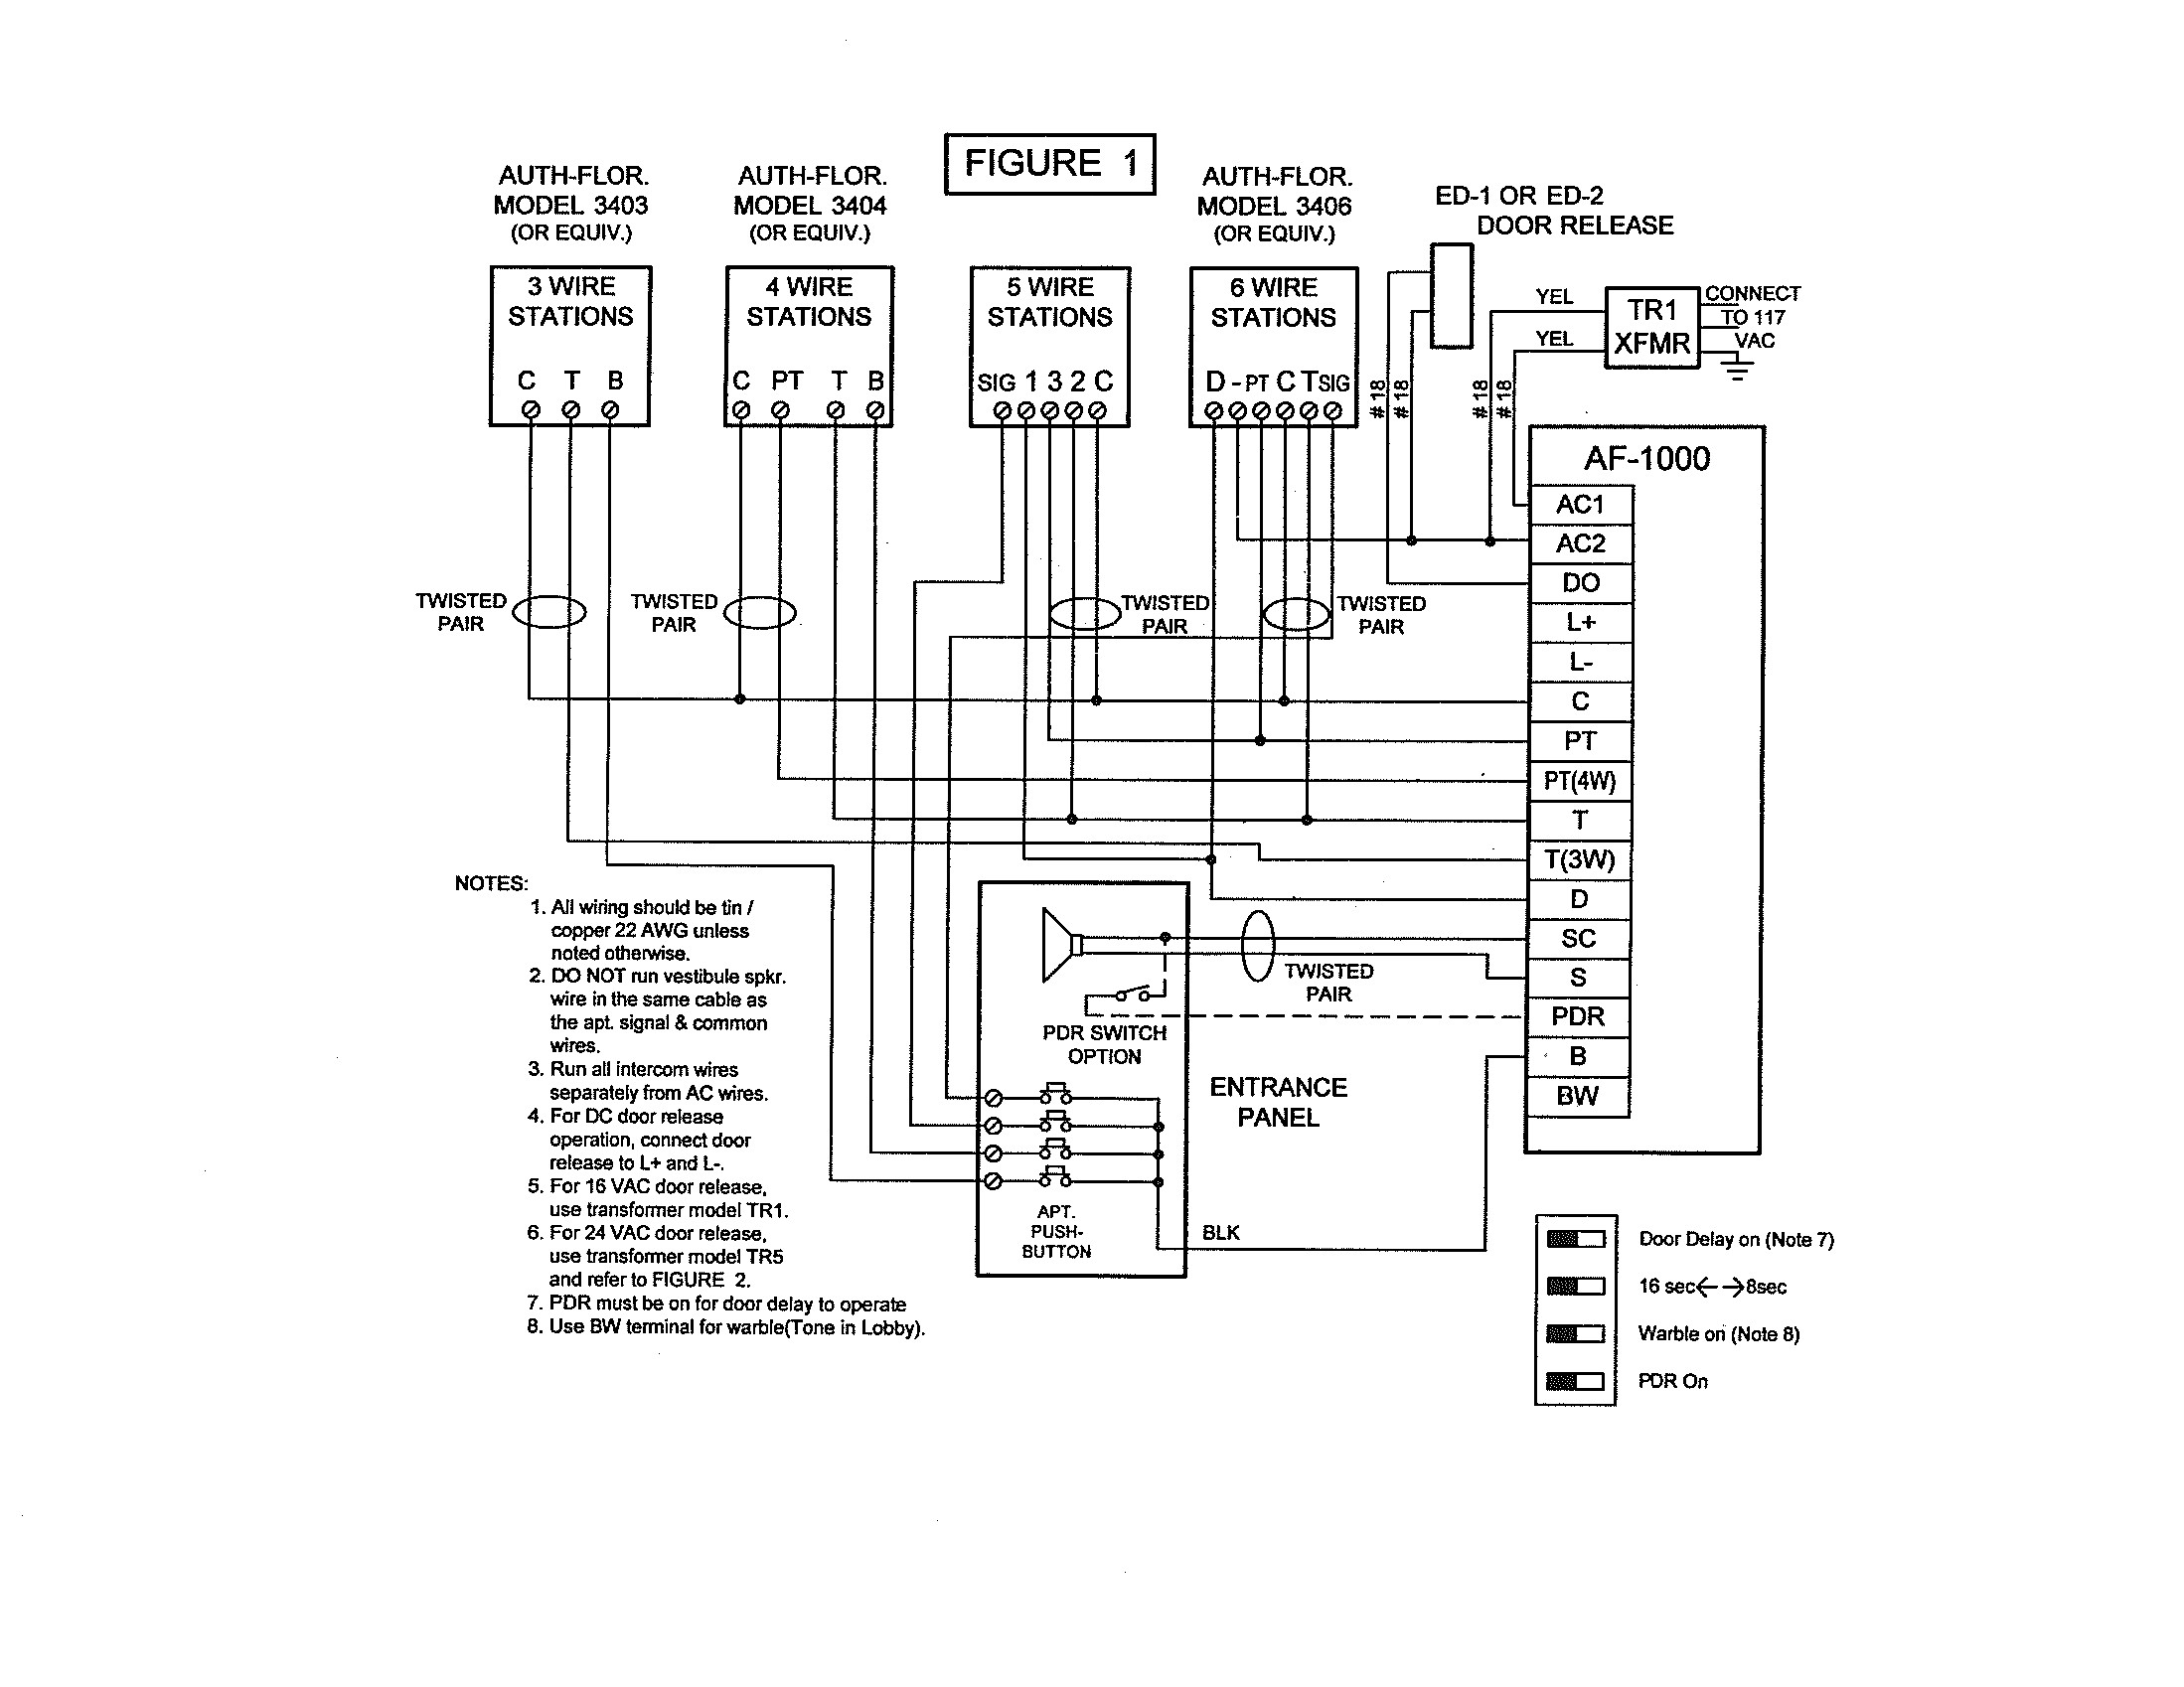 Schematic Wiring 4 Wires Circuit Diagram Symbols 3 Wire 220 Plug Intercom For Light Switch U2022 Rh Prestonfarmmotors Co Outlet Phase